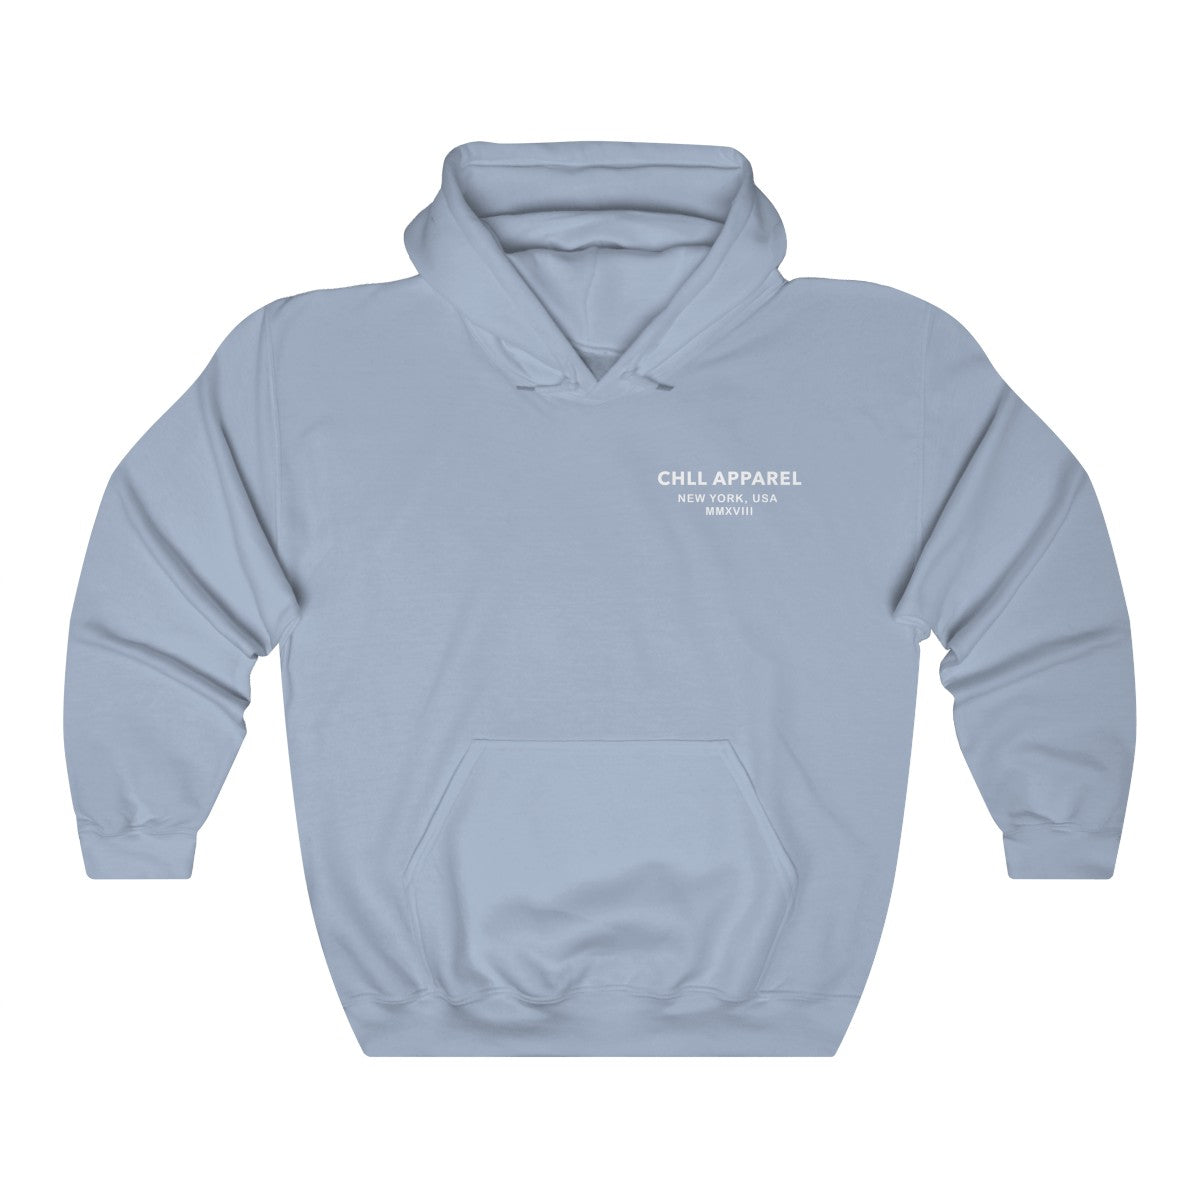 CHLL OUT HOODIE (alternate colors)